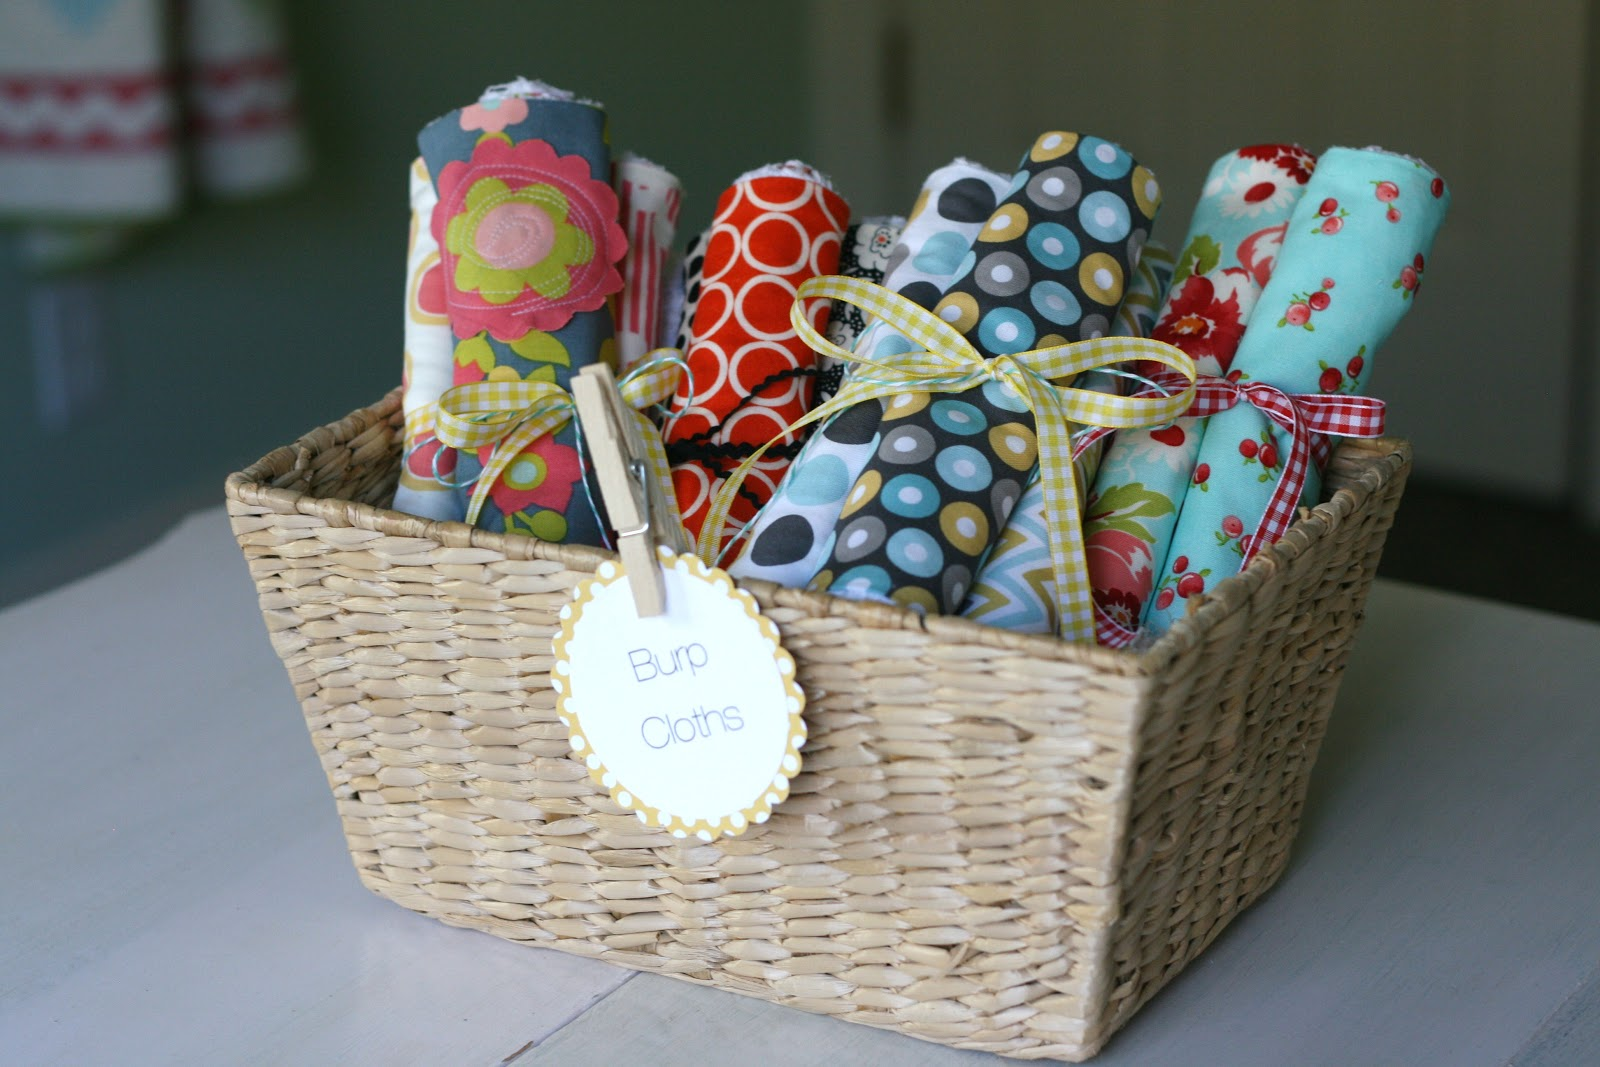 Baby Boy Gifts Pinterest : Baby boy homebade gifts party invitations ideas